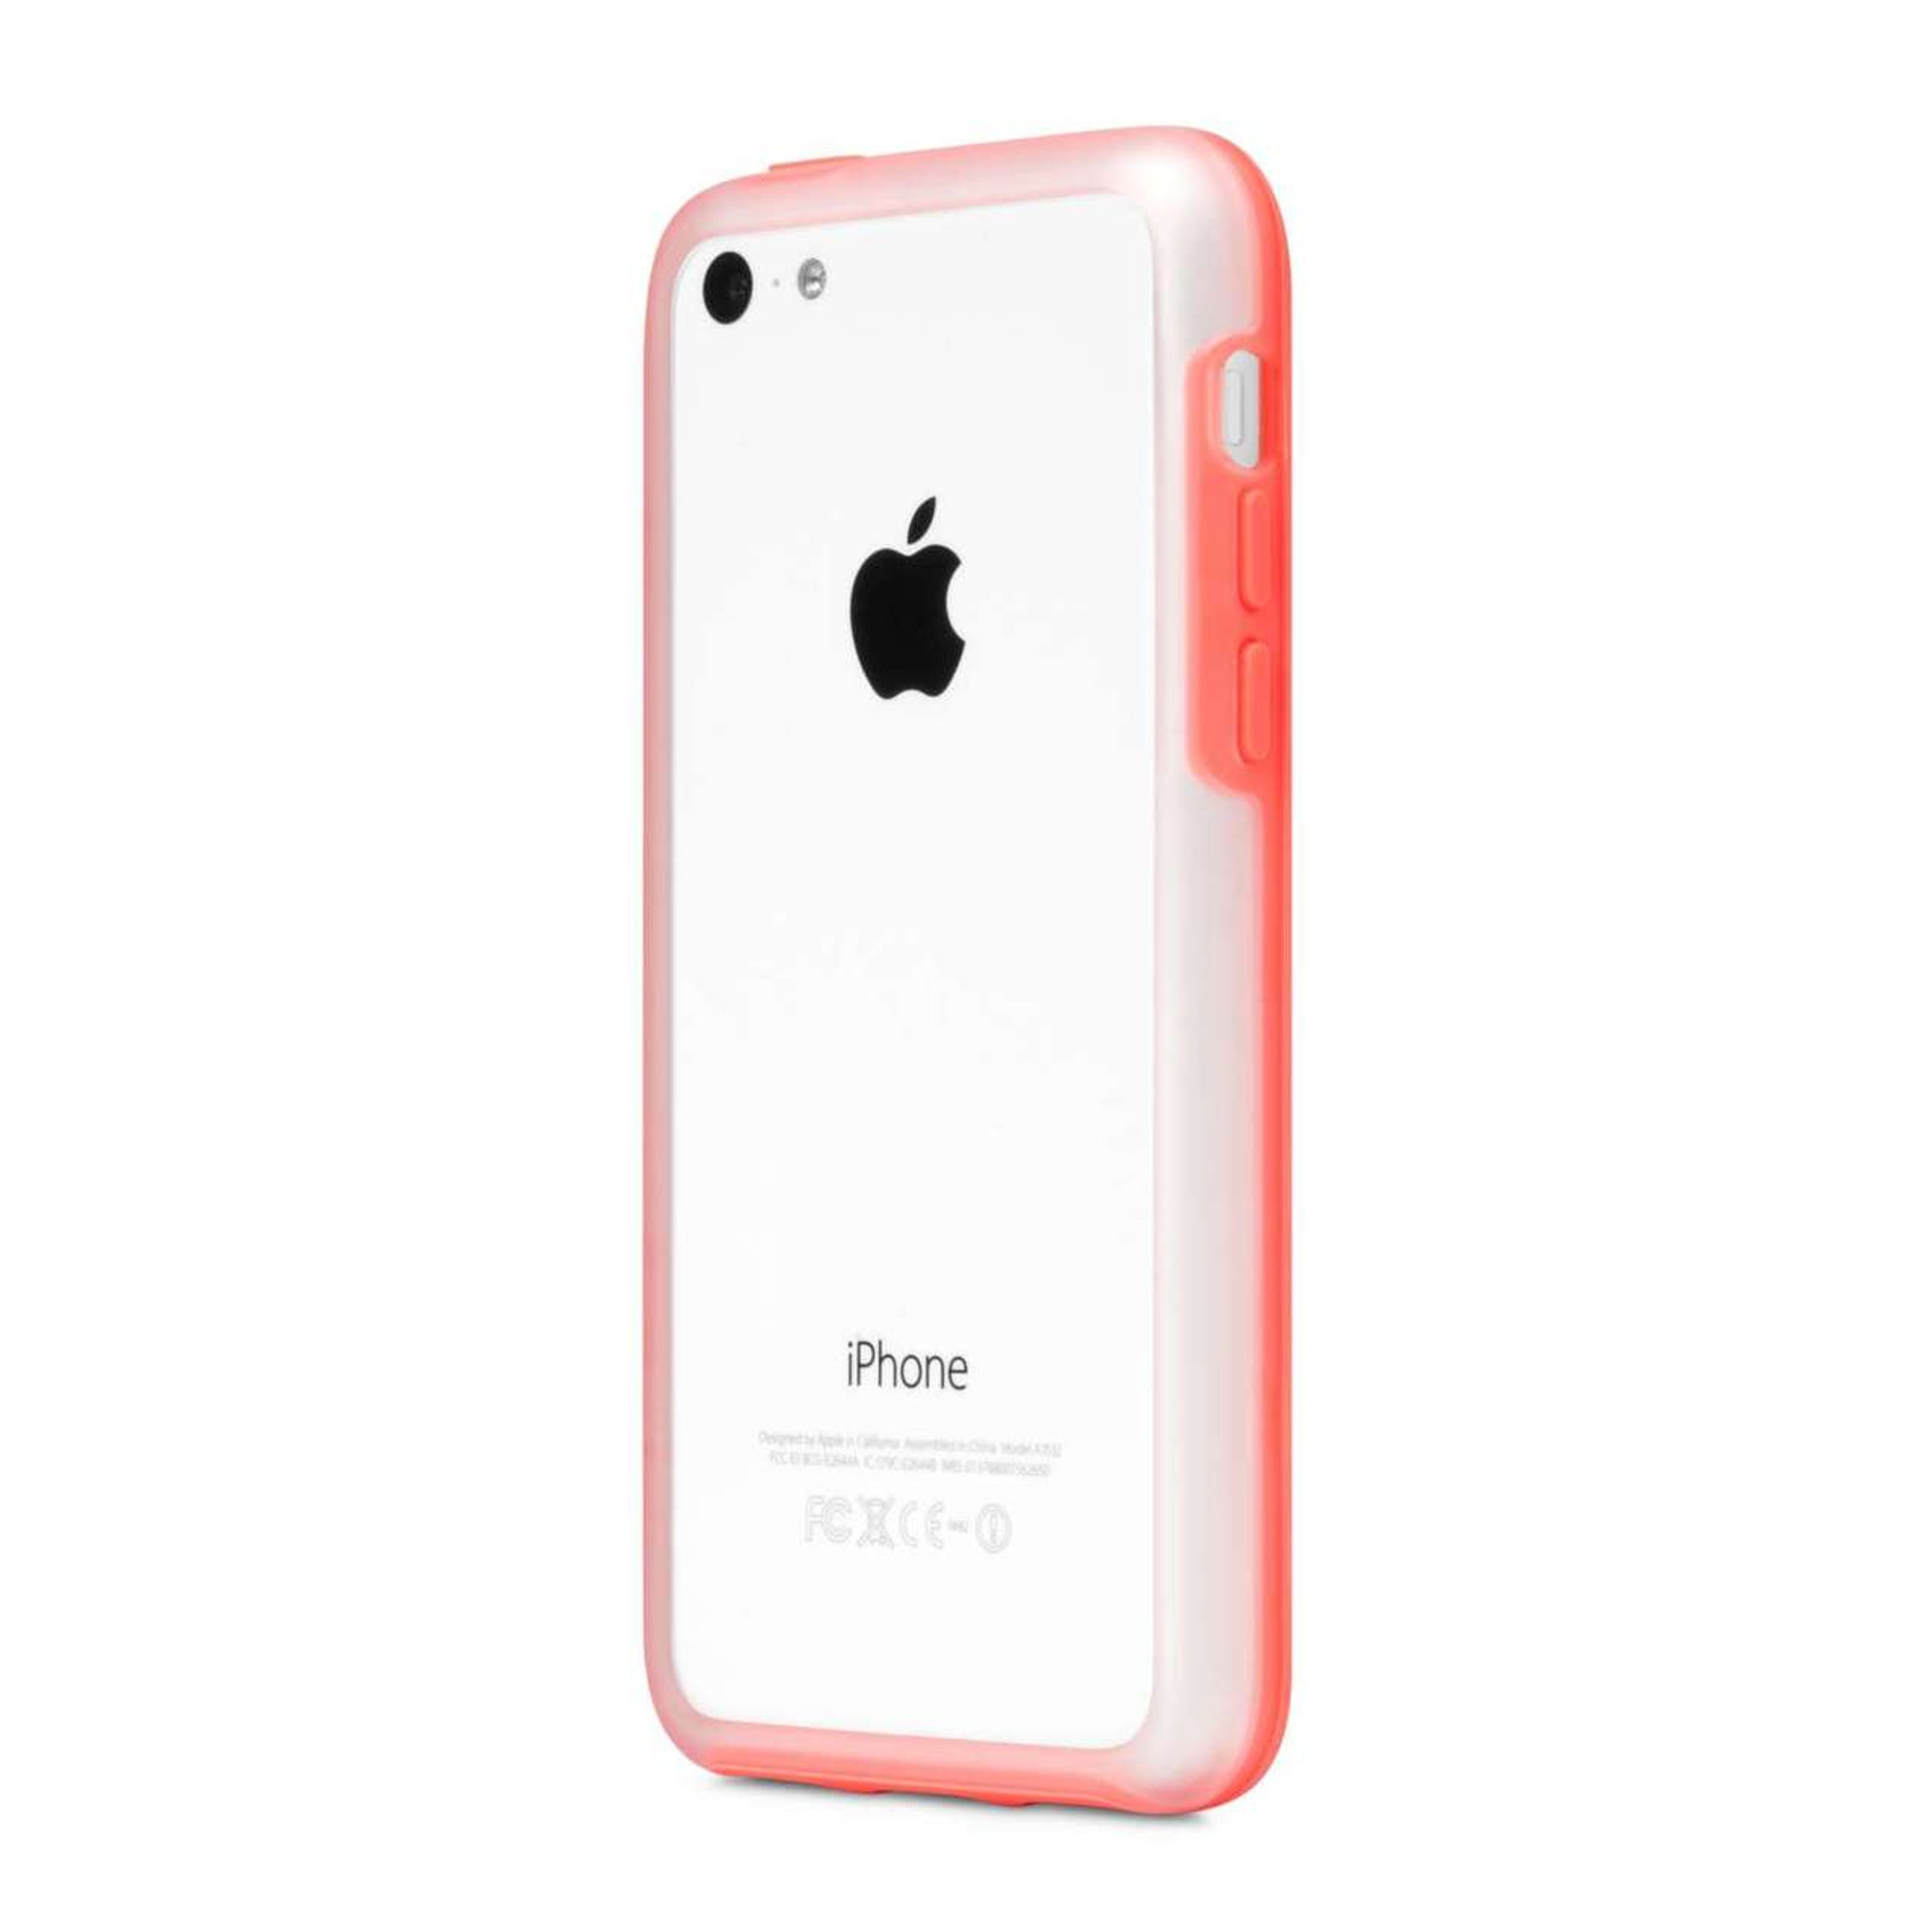 half off 8a22a 8a4a1 Incase Frame Case for iPhone 5C - Clear / Matte Pink